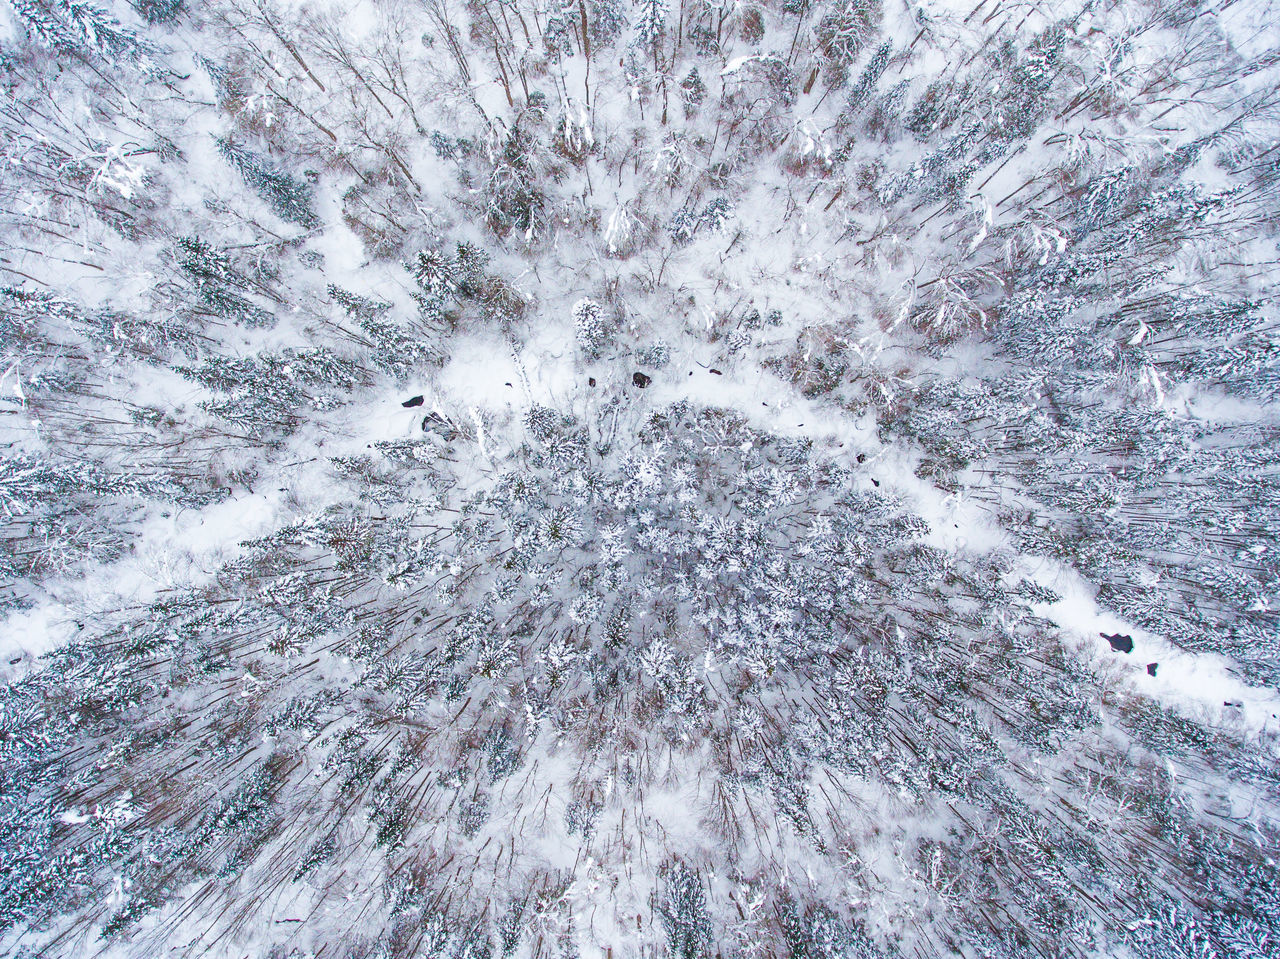 Aerial Photo taken with DJI Phantom 4. Aerial Aerial View Backgrounds Close-up Day Dji Drone  Dronephotography Full Frame Nature No People Outdoors Phantom River Sky Snow Trees Winter